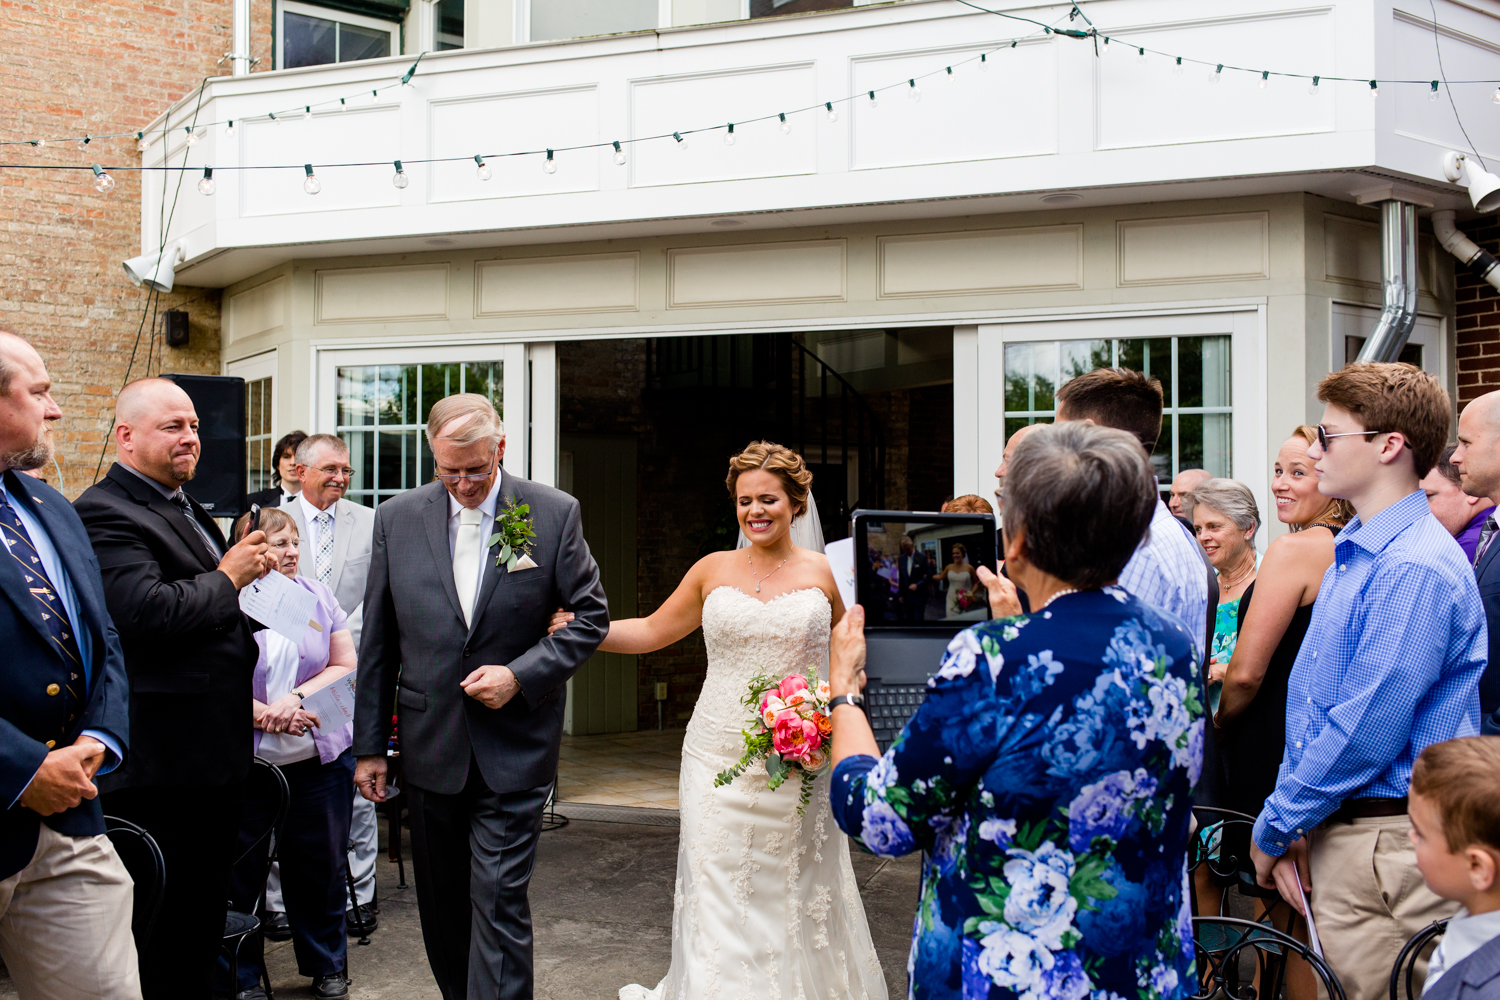 Bride is emotional as she walks down the aisle with her father.